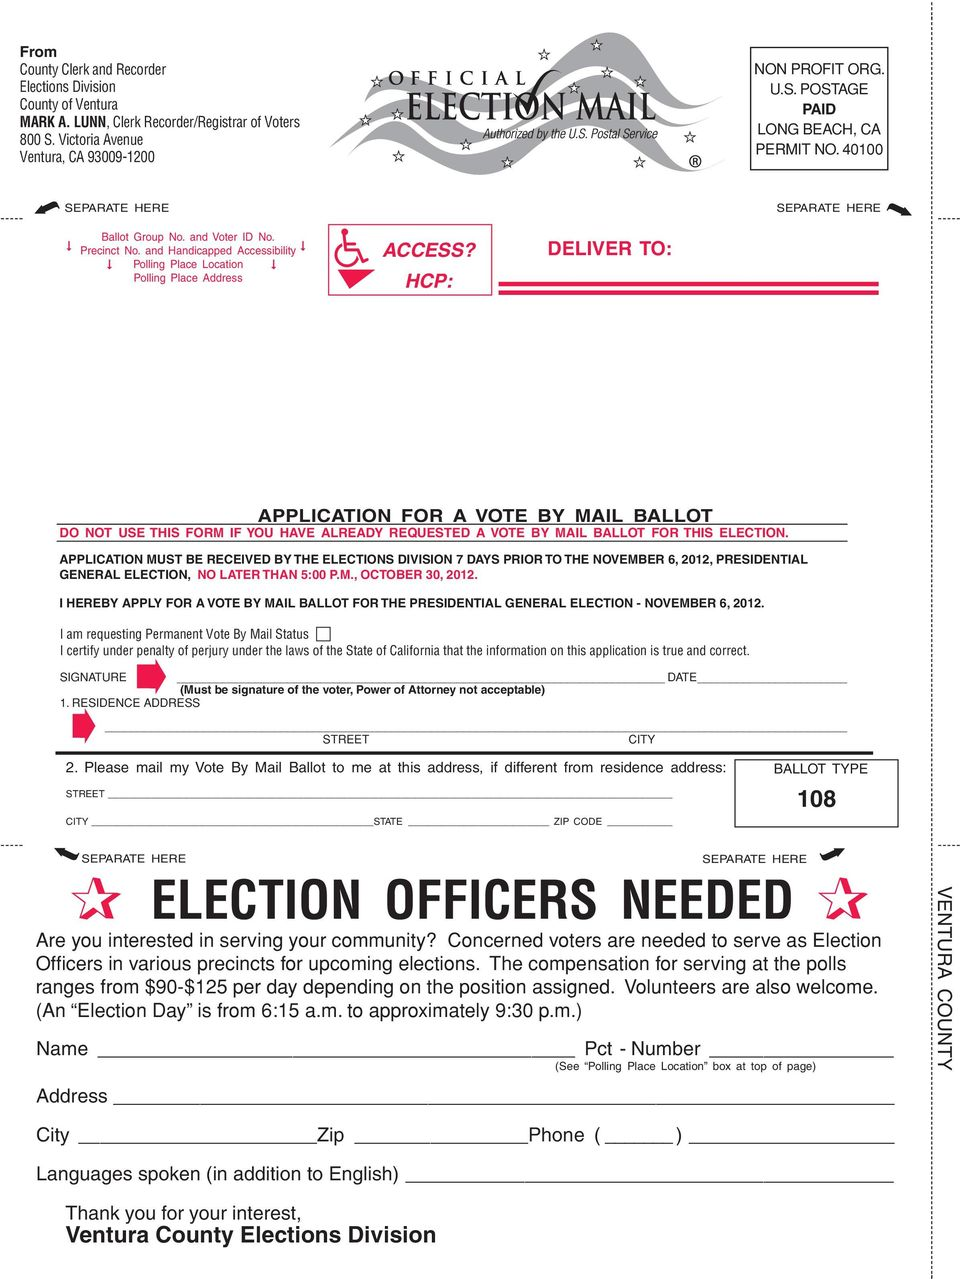 HCP: DELIVER TO: APPLICATION FOR A VOTE BY MAIL BALLOT DO NOT USE THIS FORM IF YOU HAVE ALREADY REQUESTED A VOTE BY MAIL BALLOT FOR THIS ELECTION.